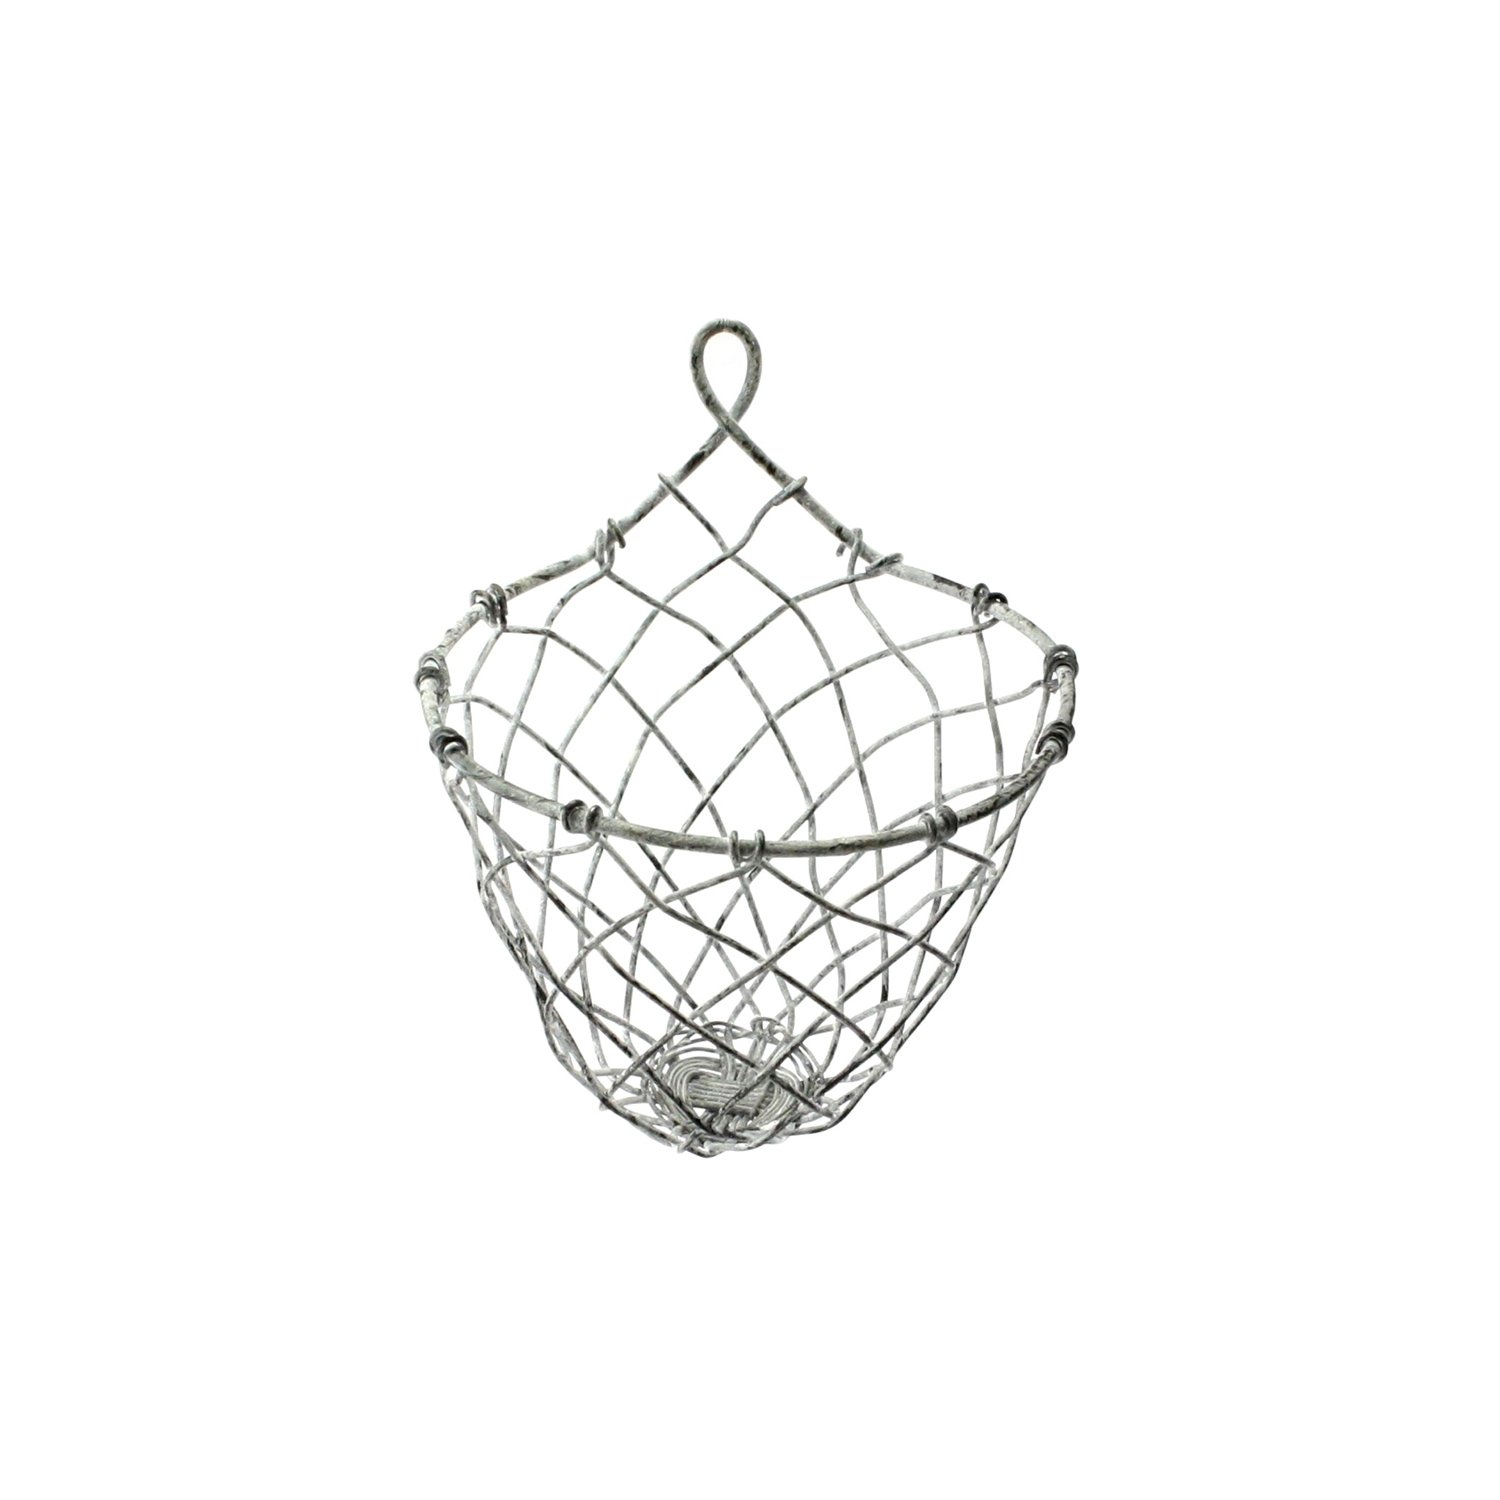 Amazon.com: Wire Wall Basket - Sm: Home & Kitchen